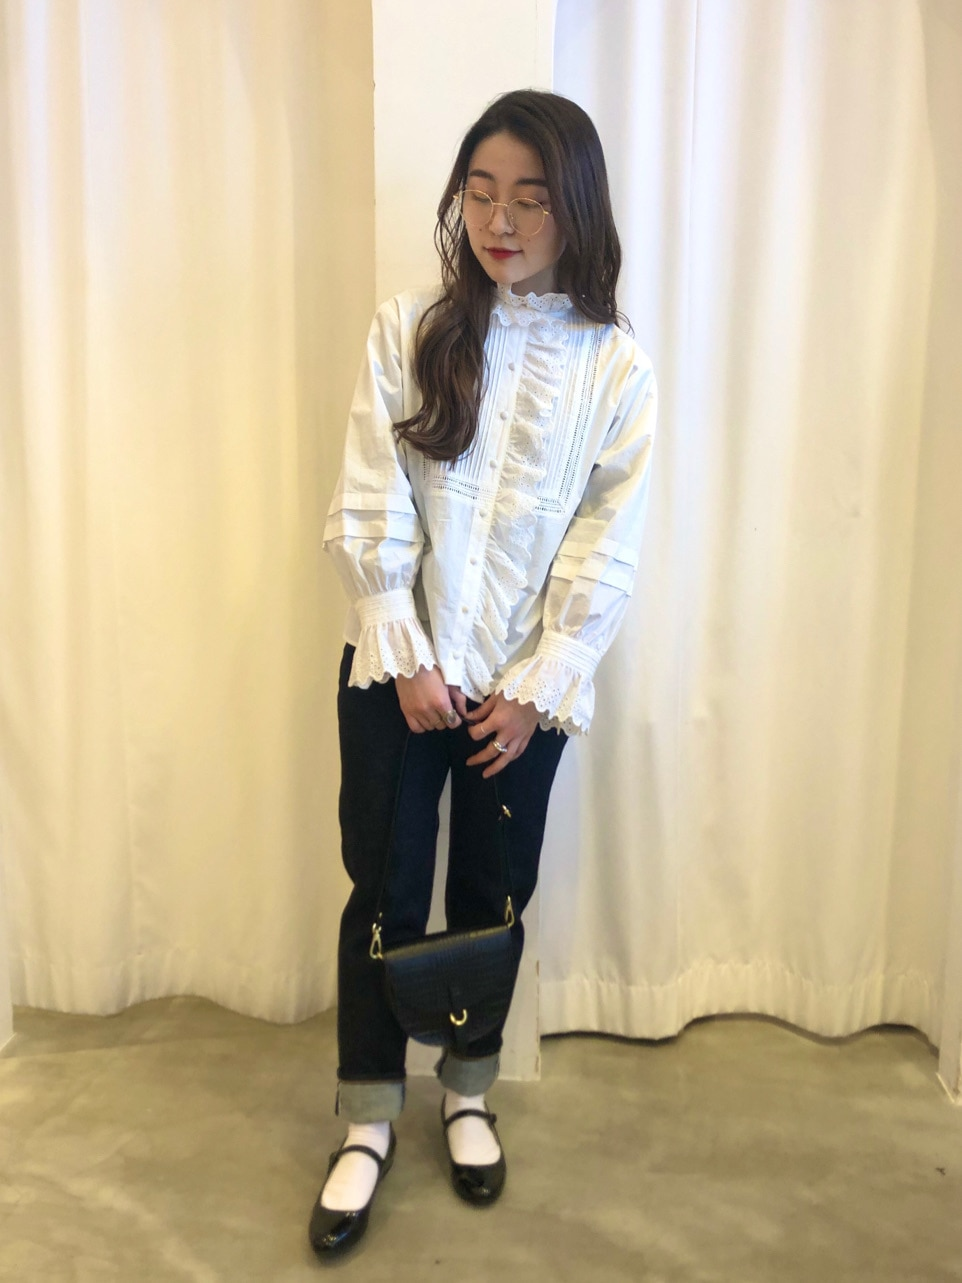 Dot and Stripes CHILD WOMAN ラフォーレ原宿 身長:153cm 2021.01.05